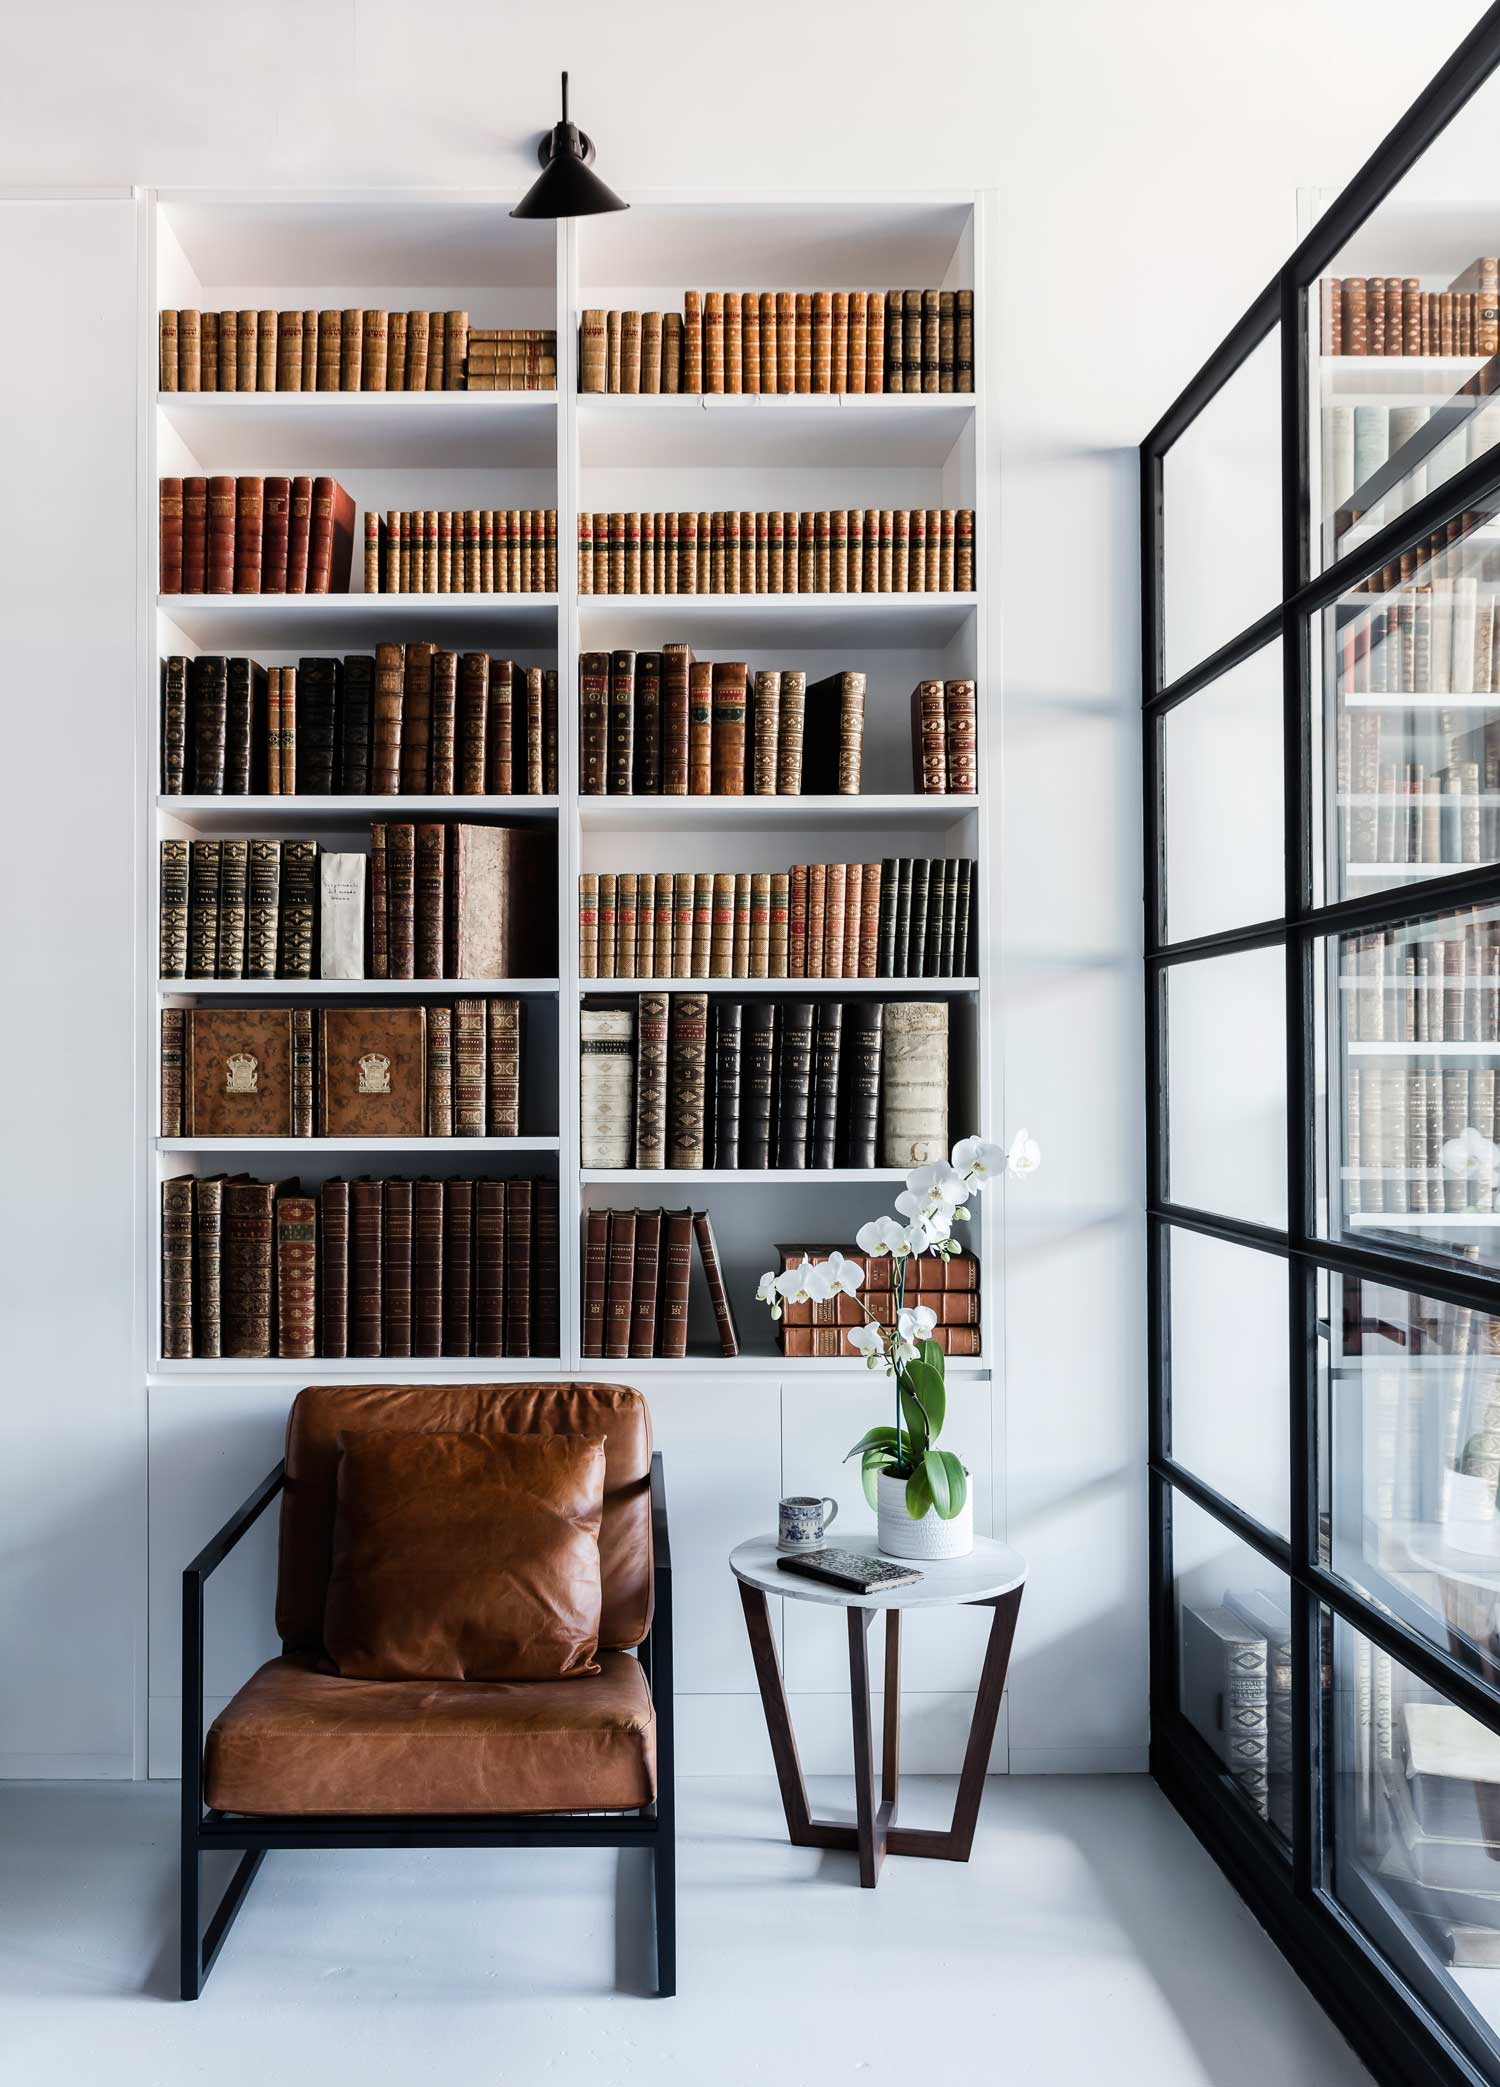 Rare-Bookseller-Office-Space-in-Surry-Hills-by-Busatti-Studio-Yellowtrace-02